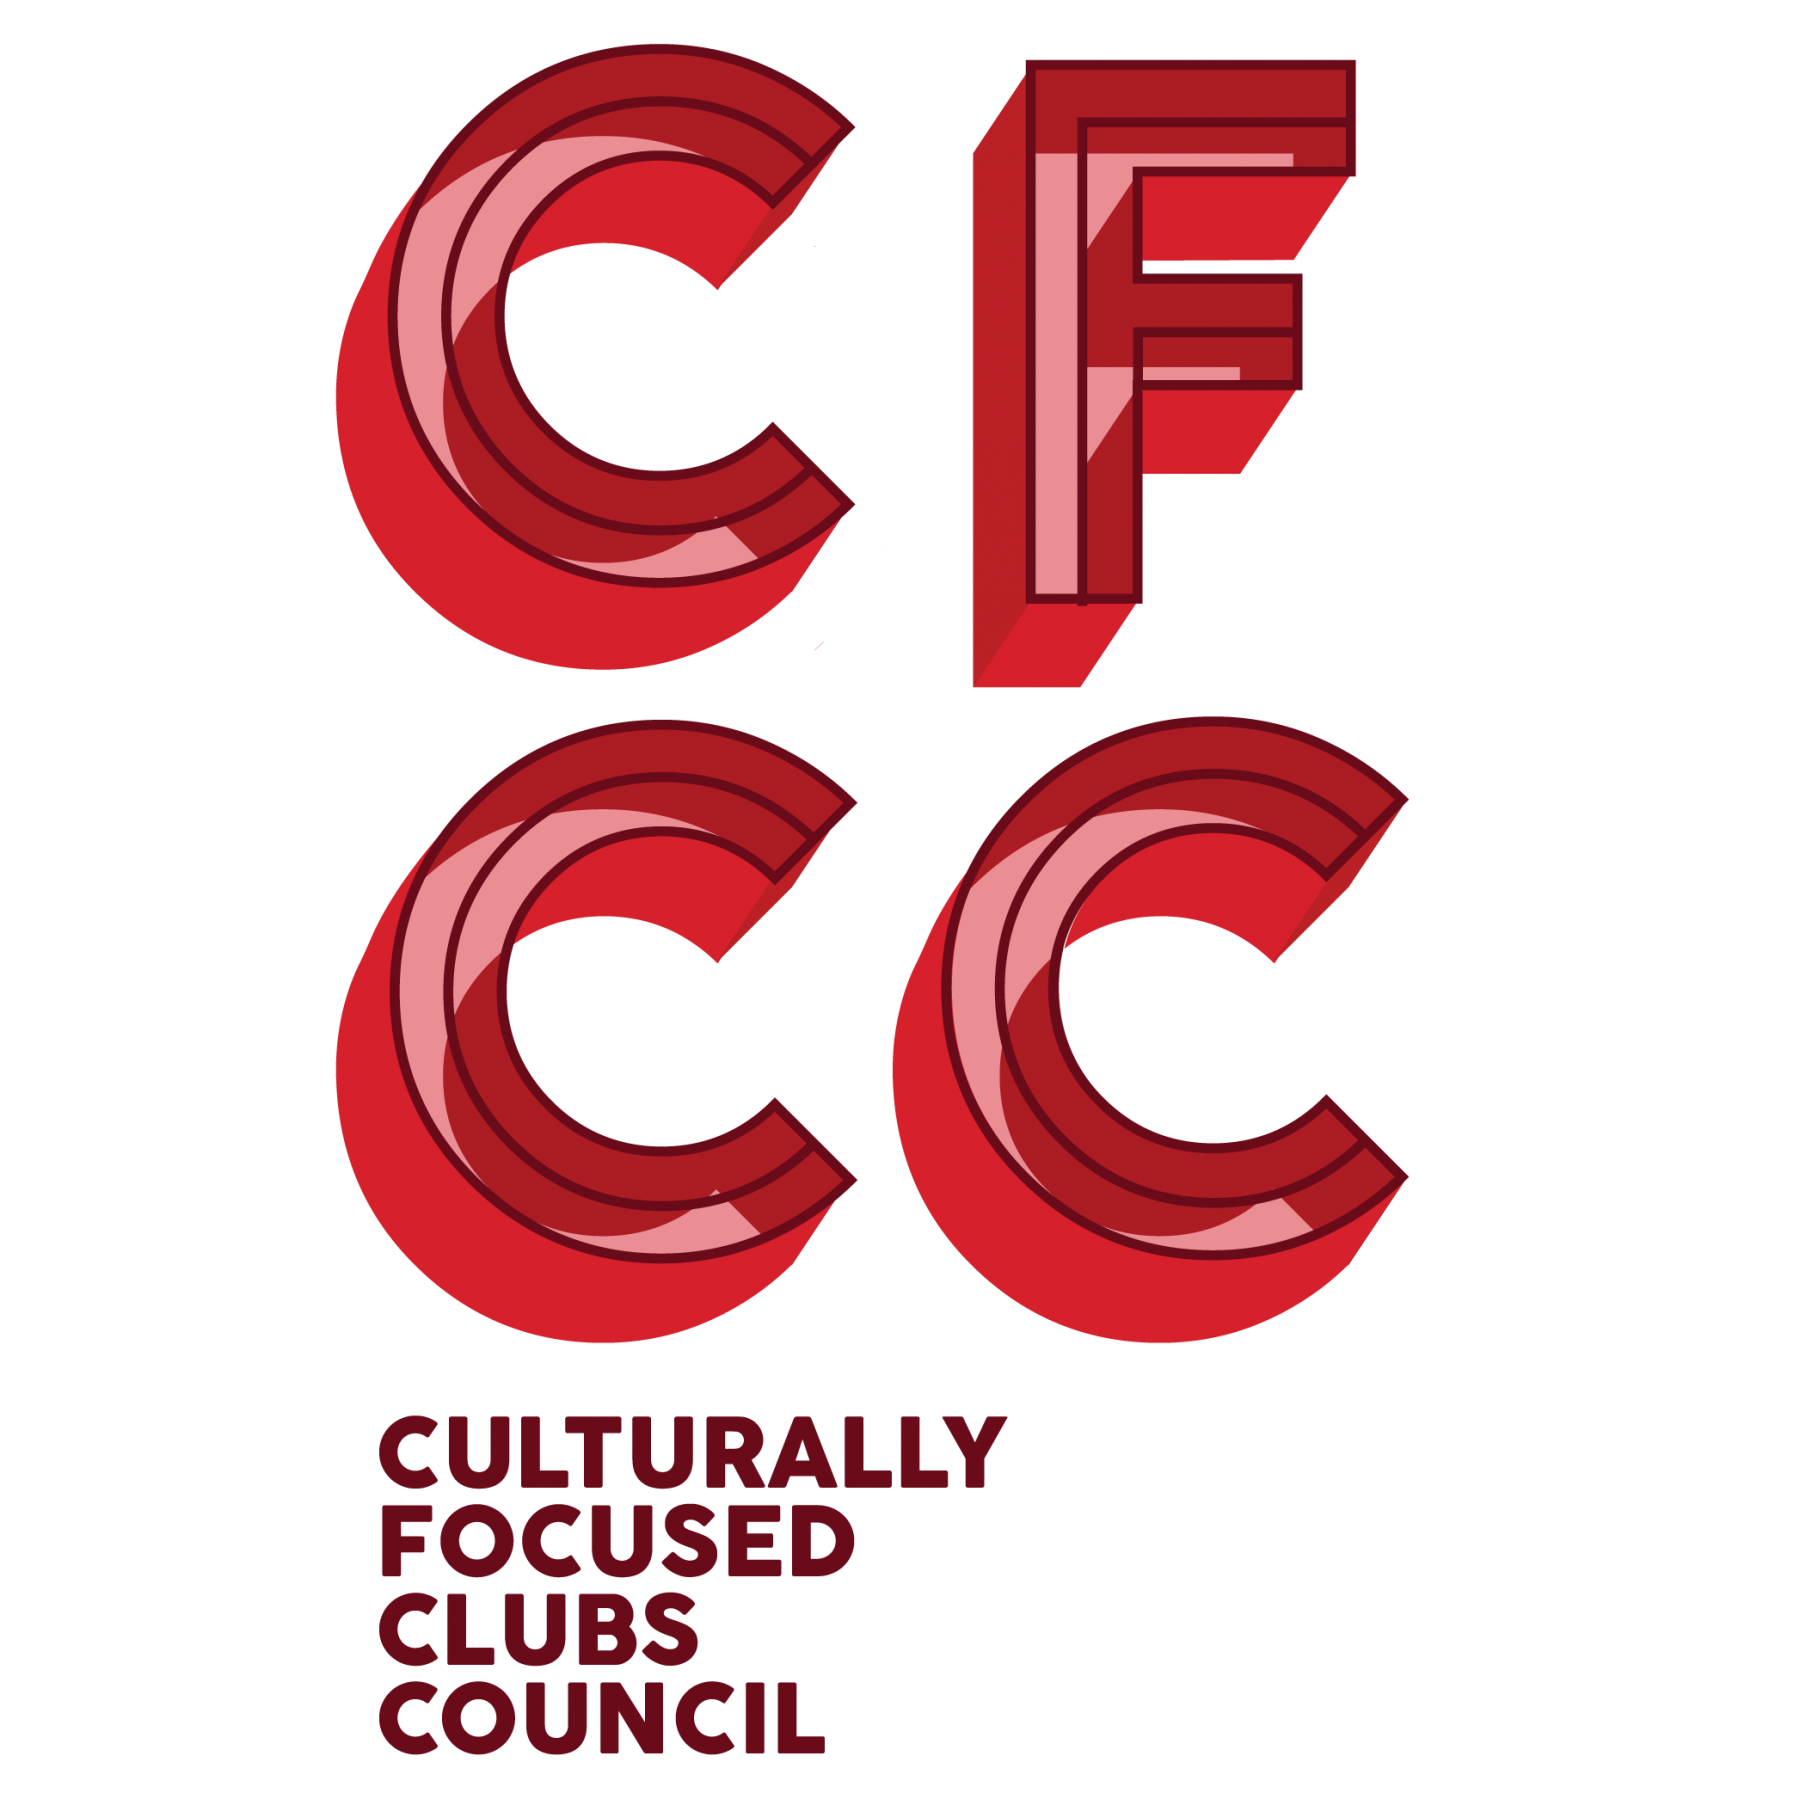 Culturally Focused Clubs Council (CFCC)